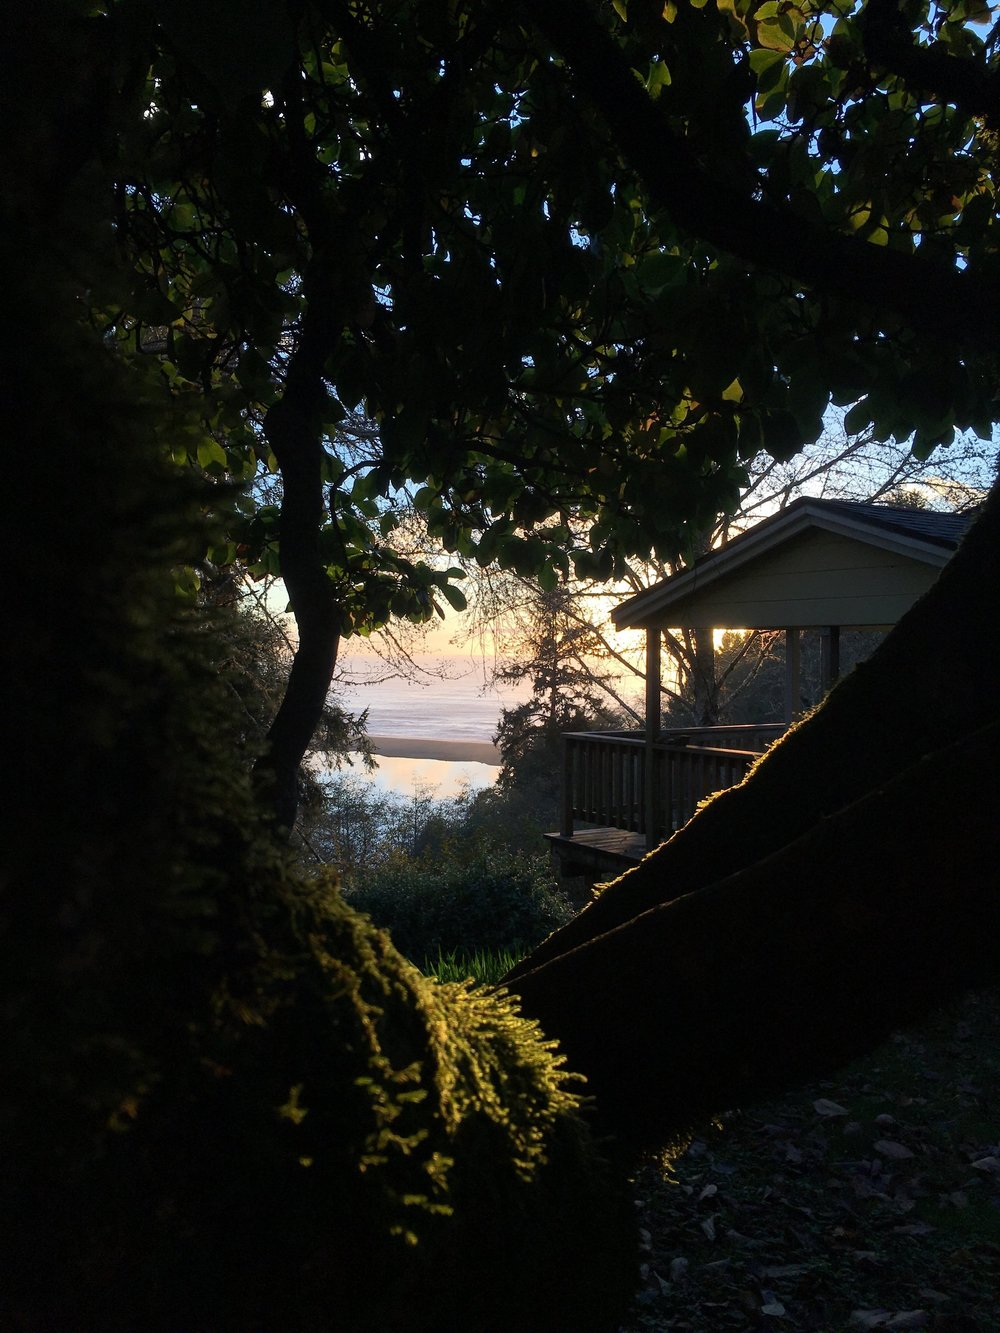 Our secondary vacation rental overlooks the mouth of the Klamath. It offers guests privacy and an unbelievable view. For more information on this please ask.